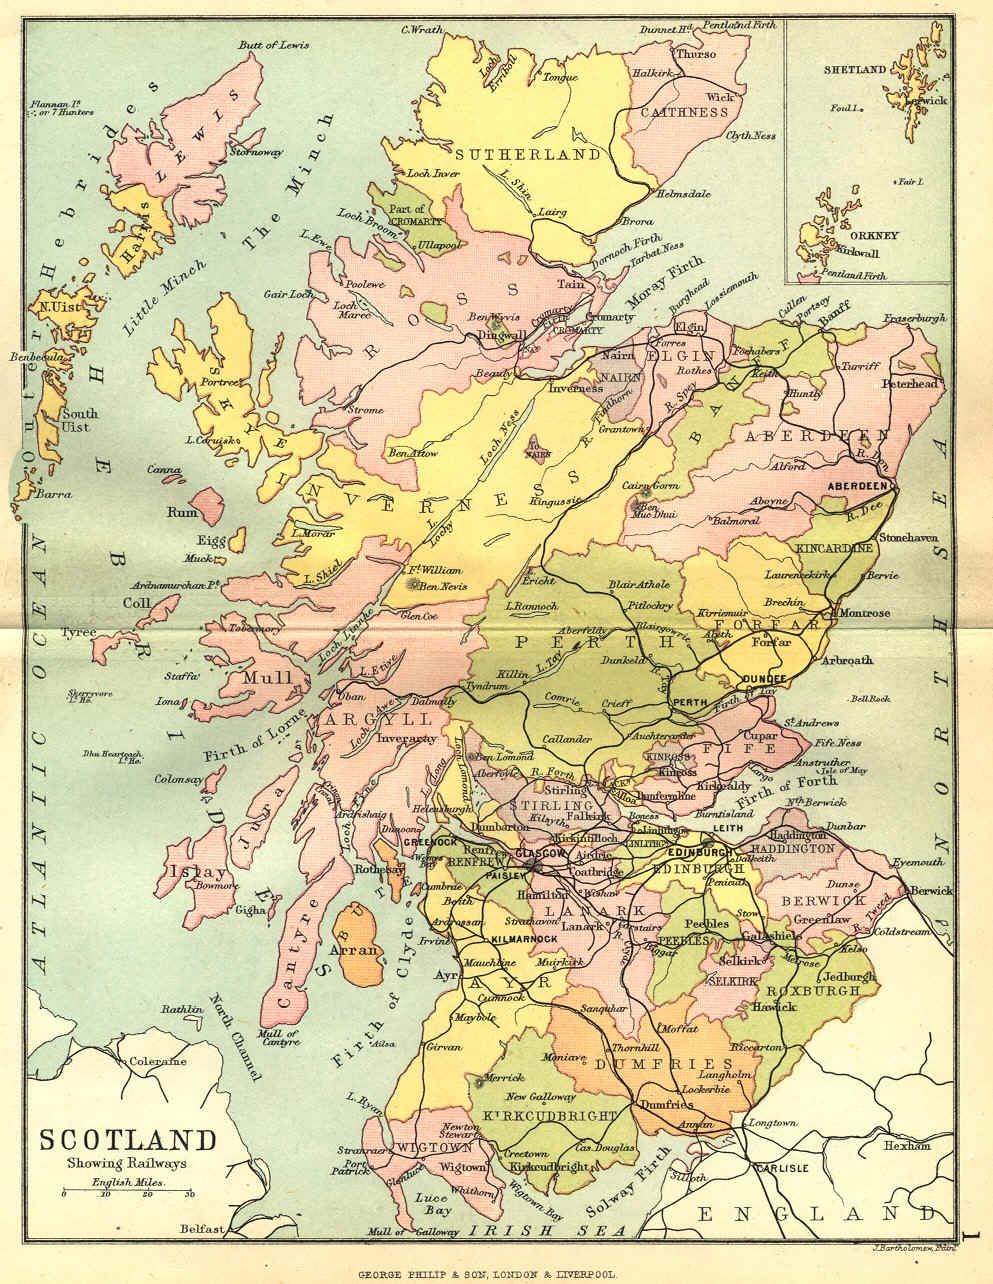 Bartholomews Map of Scotland showing county boundaries , towns and